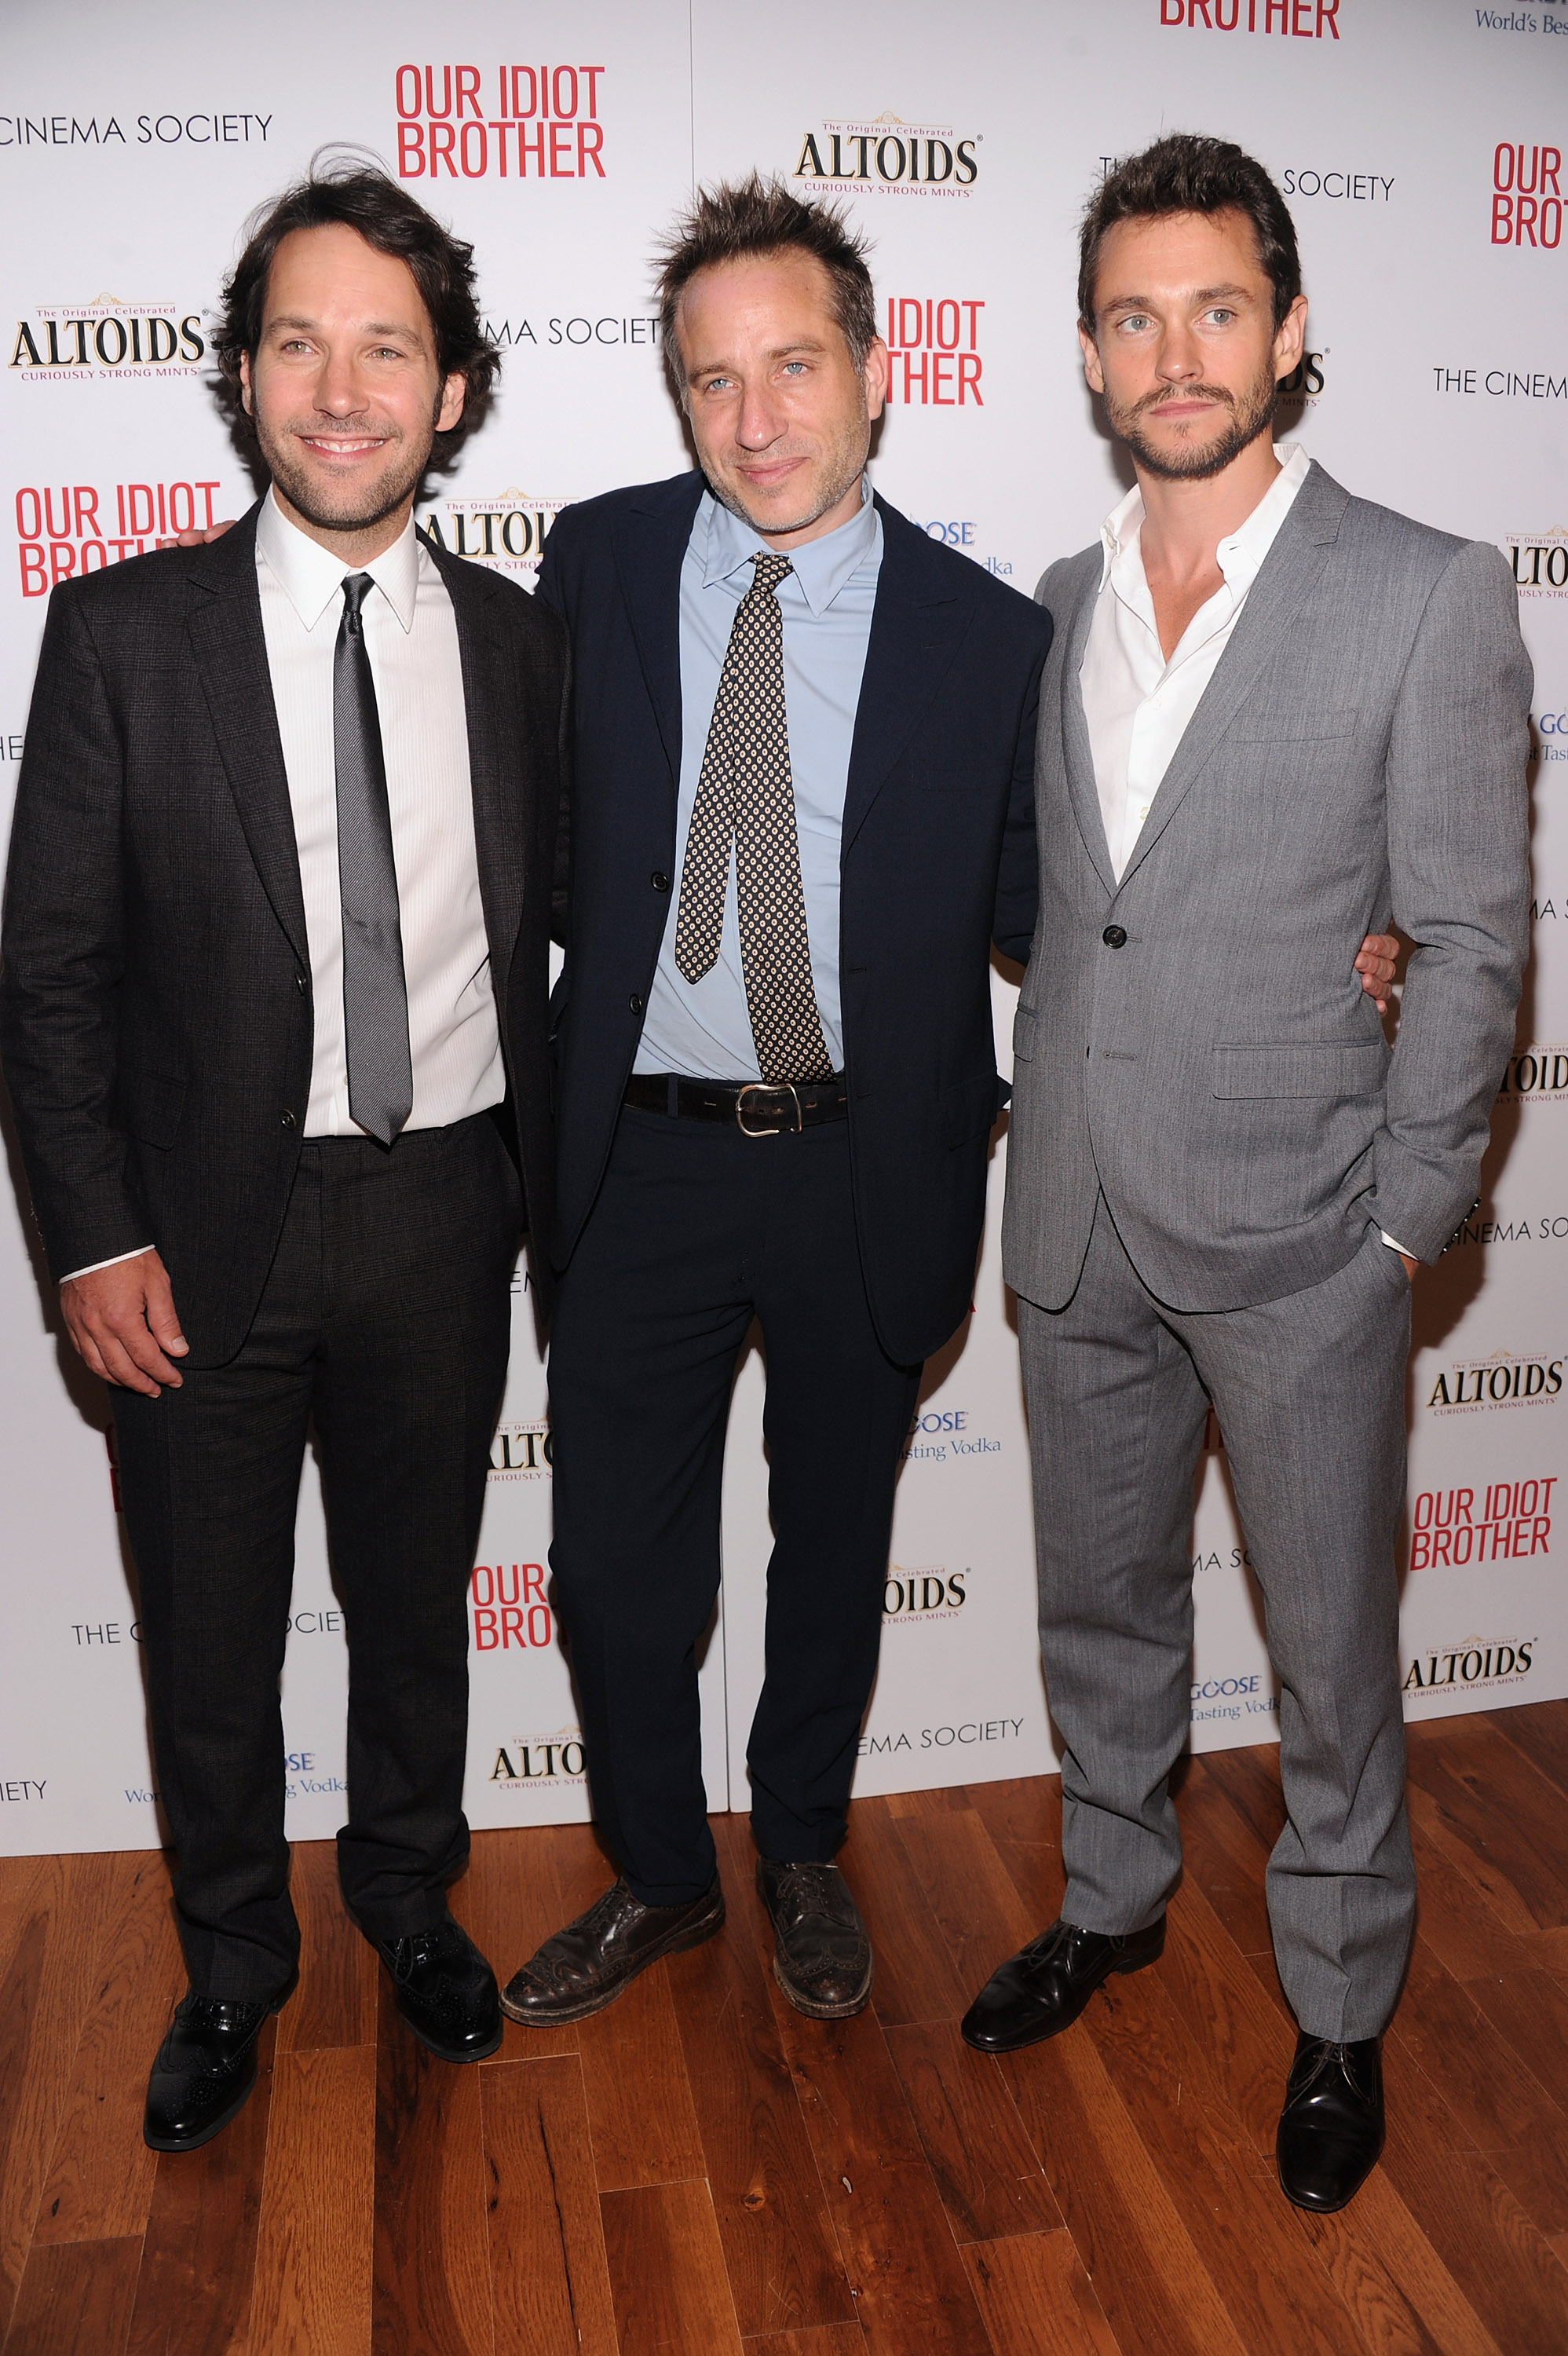 Paul Rudd, Jesse Peretz and Hugh Dancy